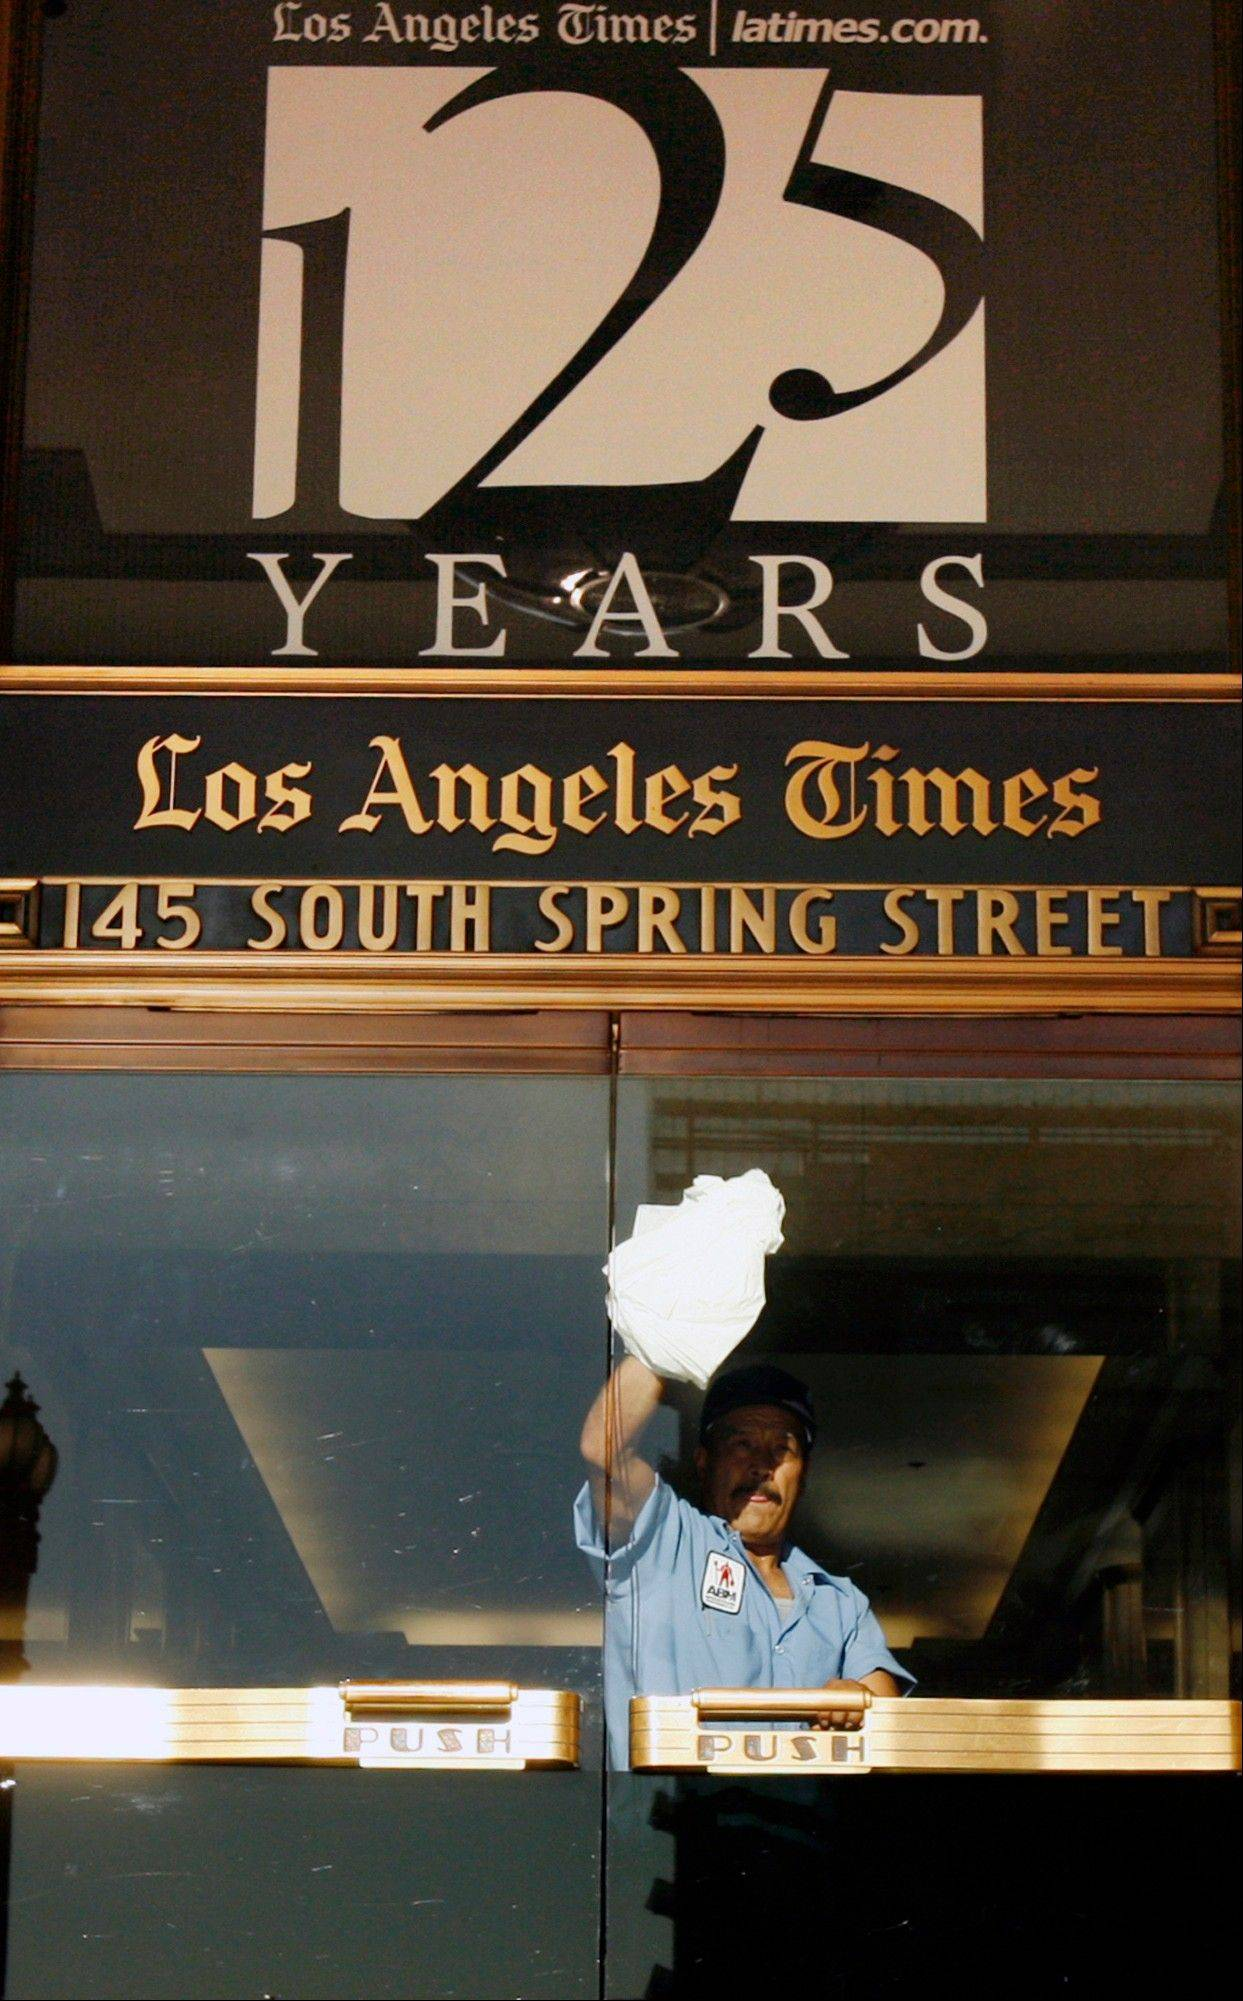 Associated Press/Nov. 16, 2006 A worker cleans an entrance to the Los Angeles Times building in Los Angeles. Federal authorities allege that Matthew Keys provided hackers with login information to access the Tribune Company�s computer system in December 2010.